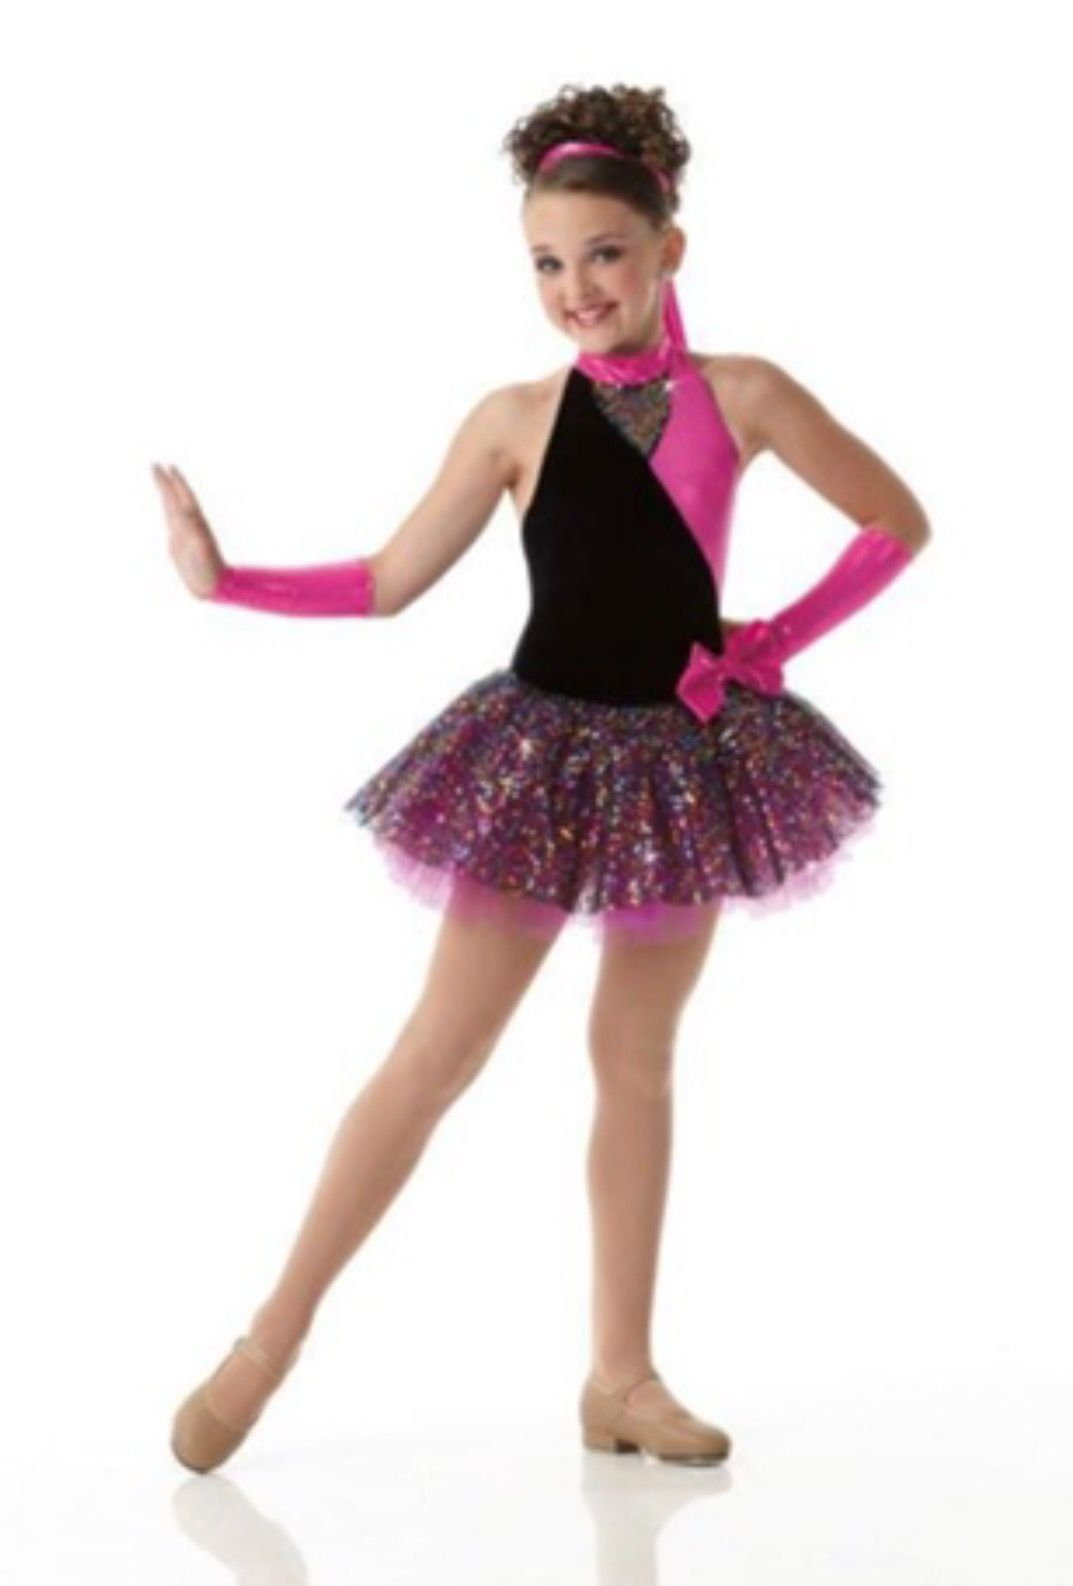 c58f22322ab5 Pin by Alison Lombardo on Dance recital outfits